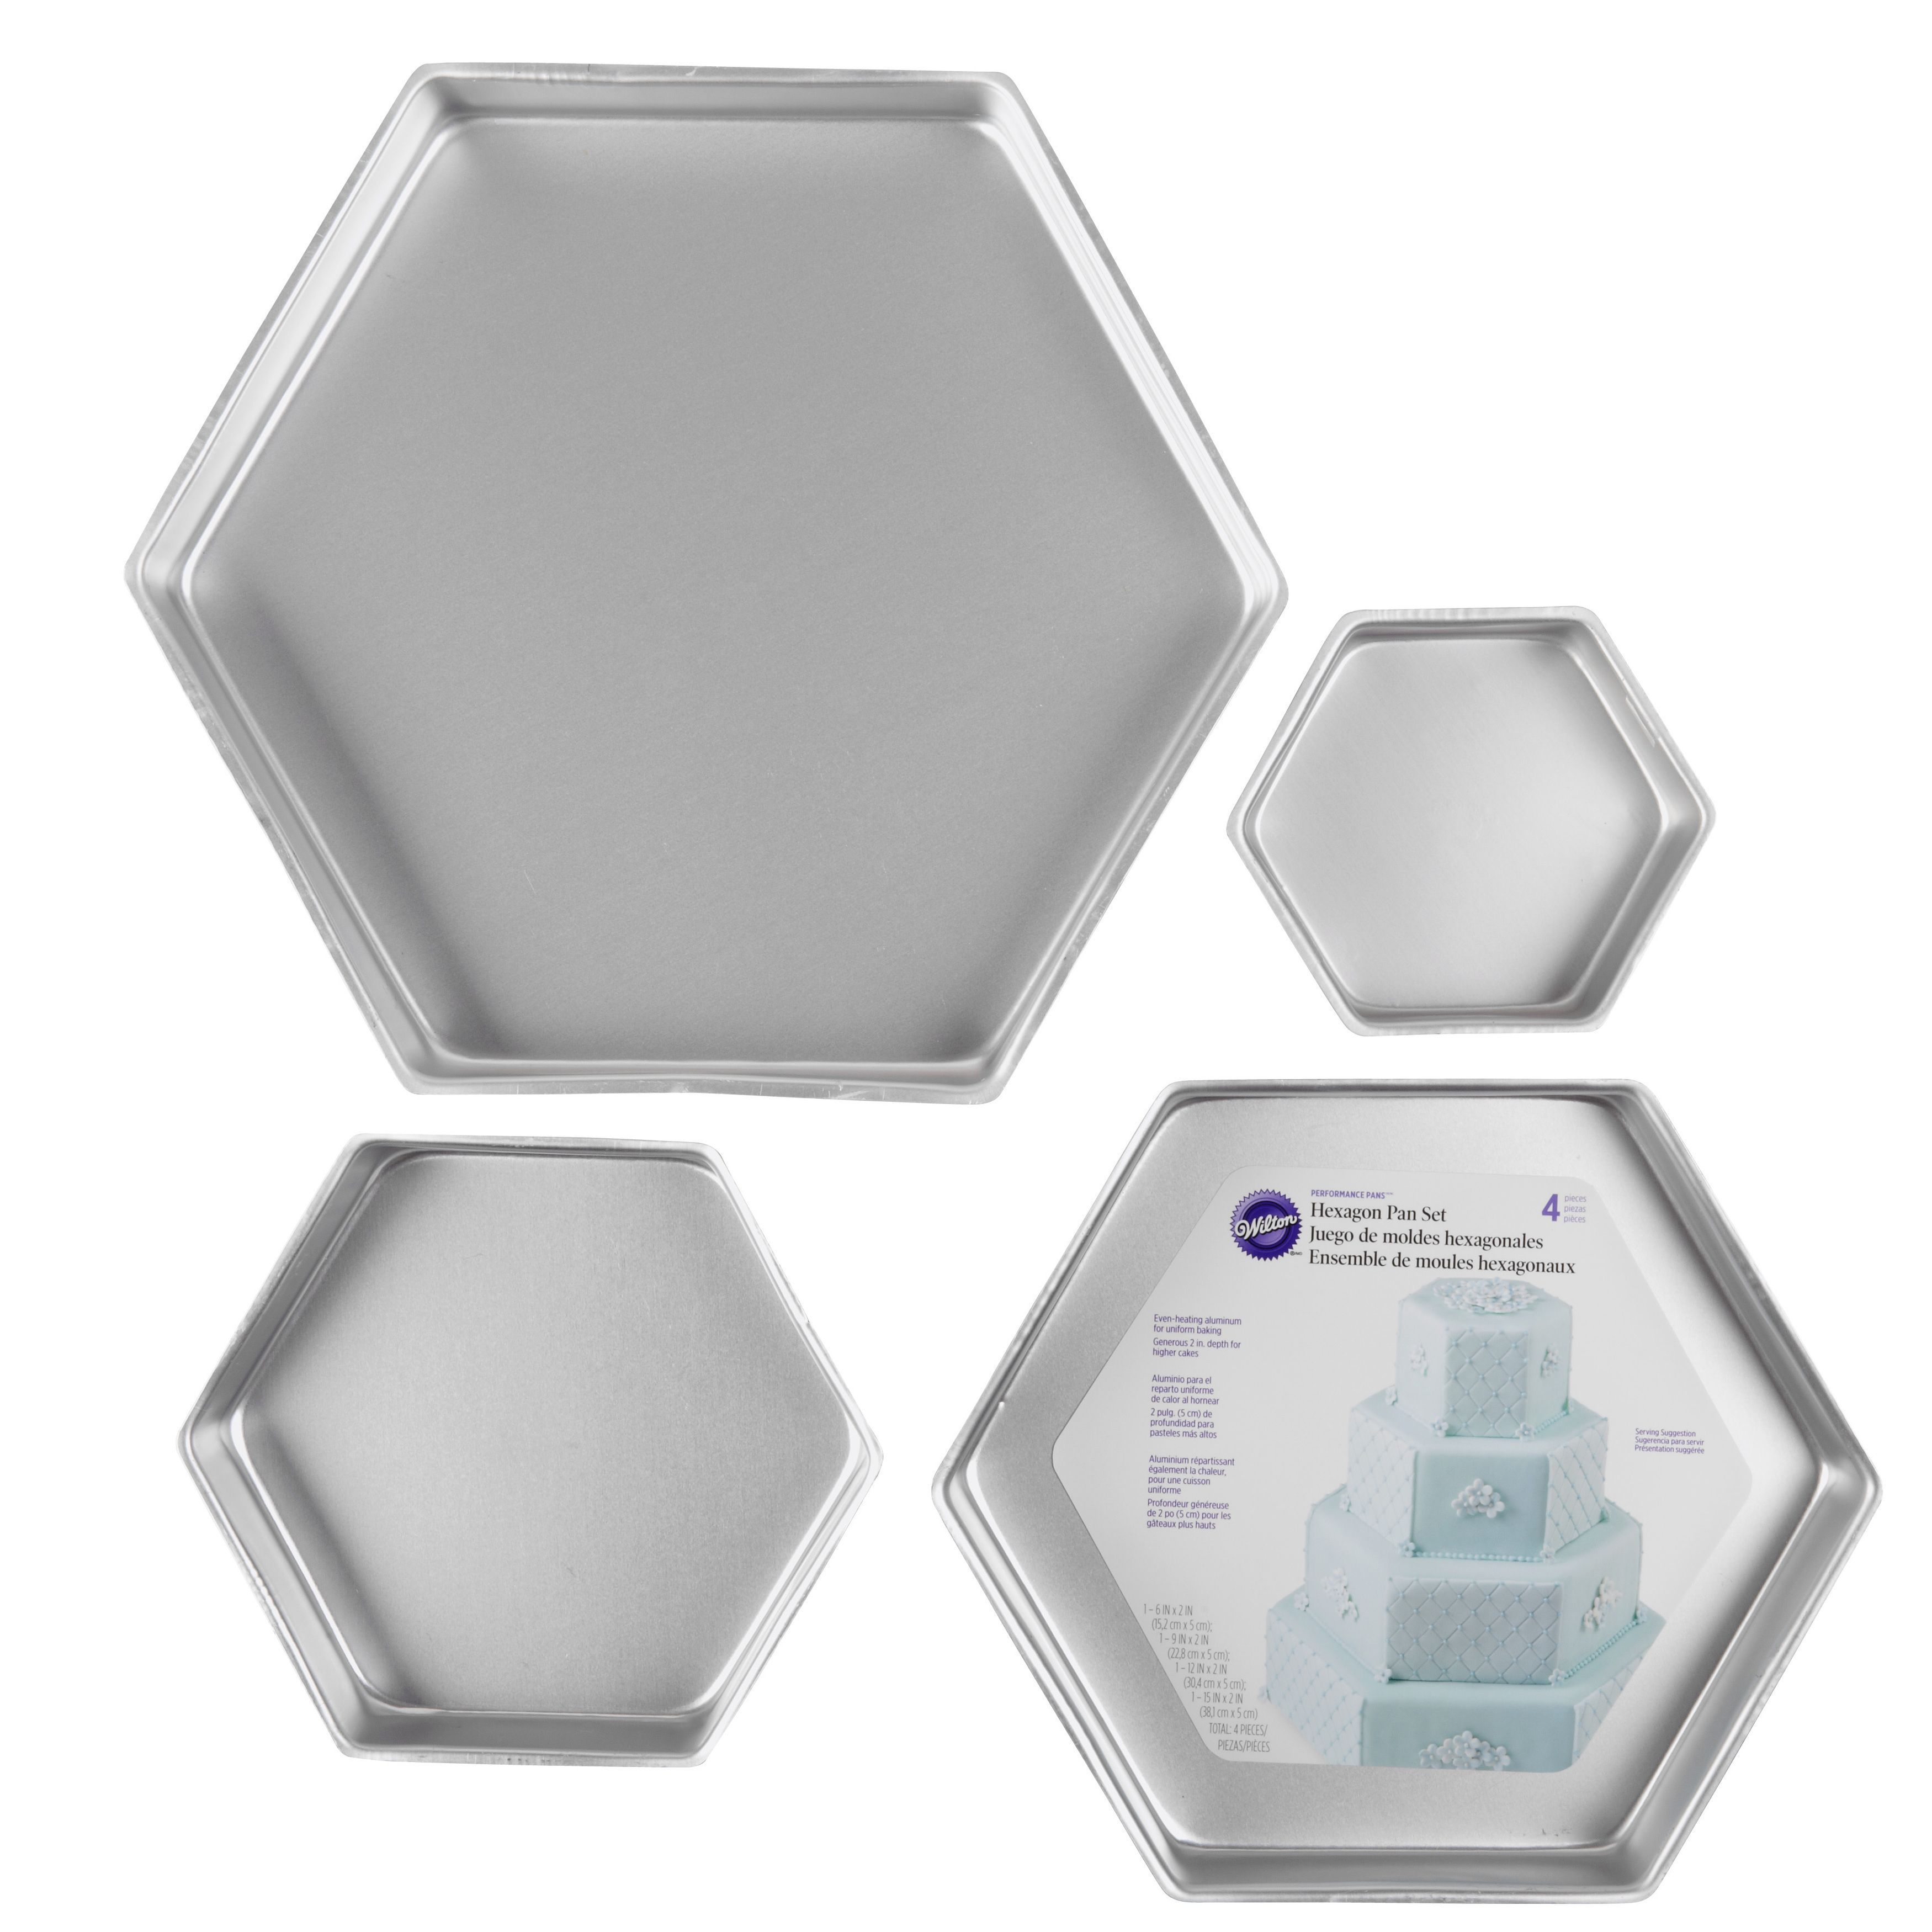 Performance Hexagon Cake Pans | Hexagons, Products and Cakes